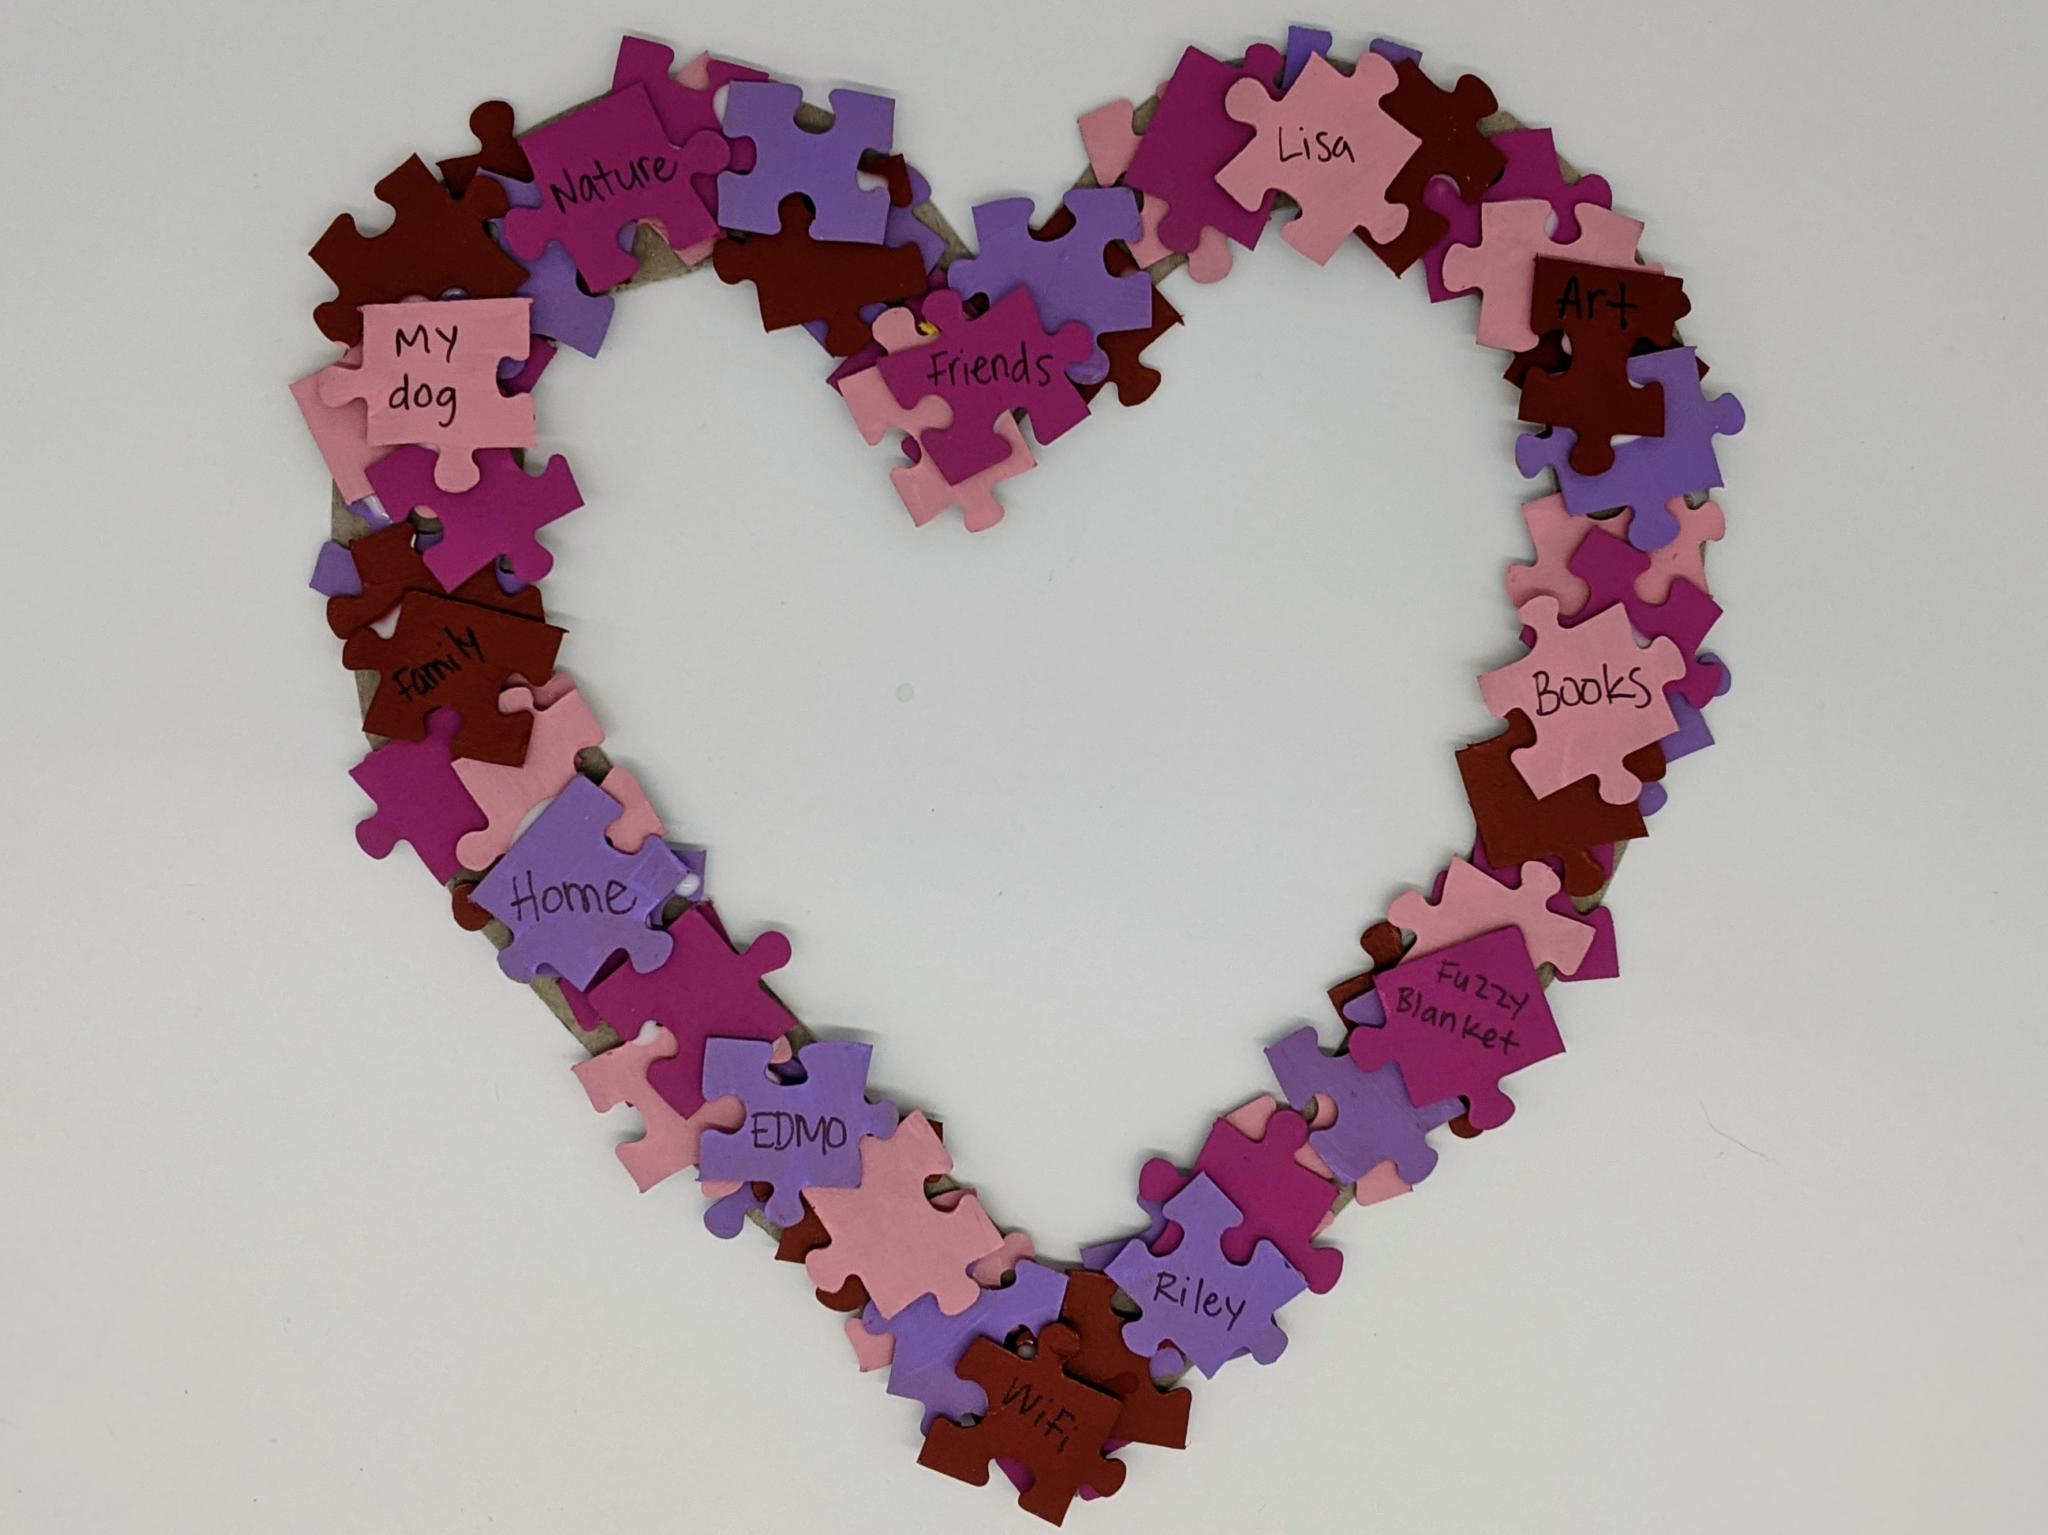 Transform an old puzzle or paper scraps into a beautiful wall hanging that expresses your love!